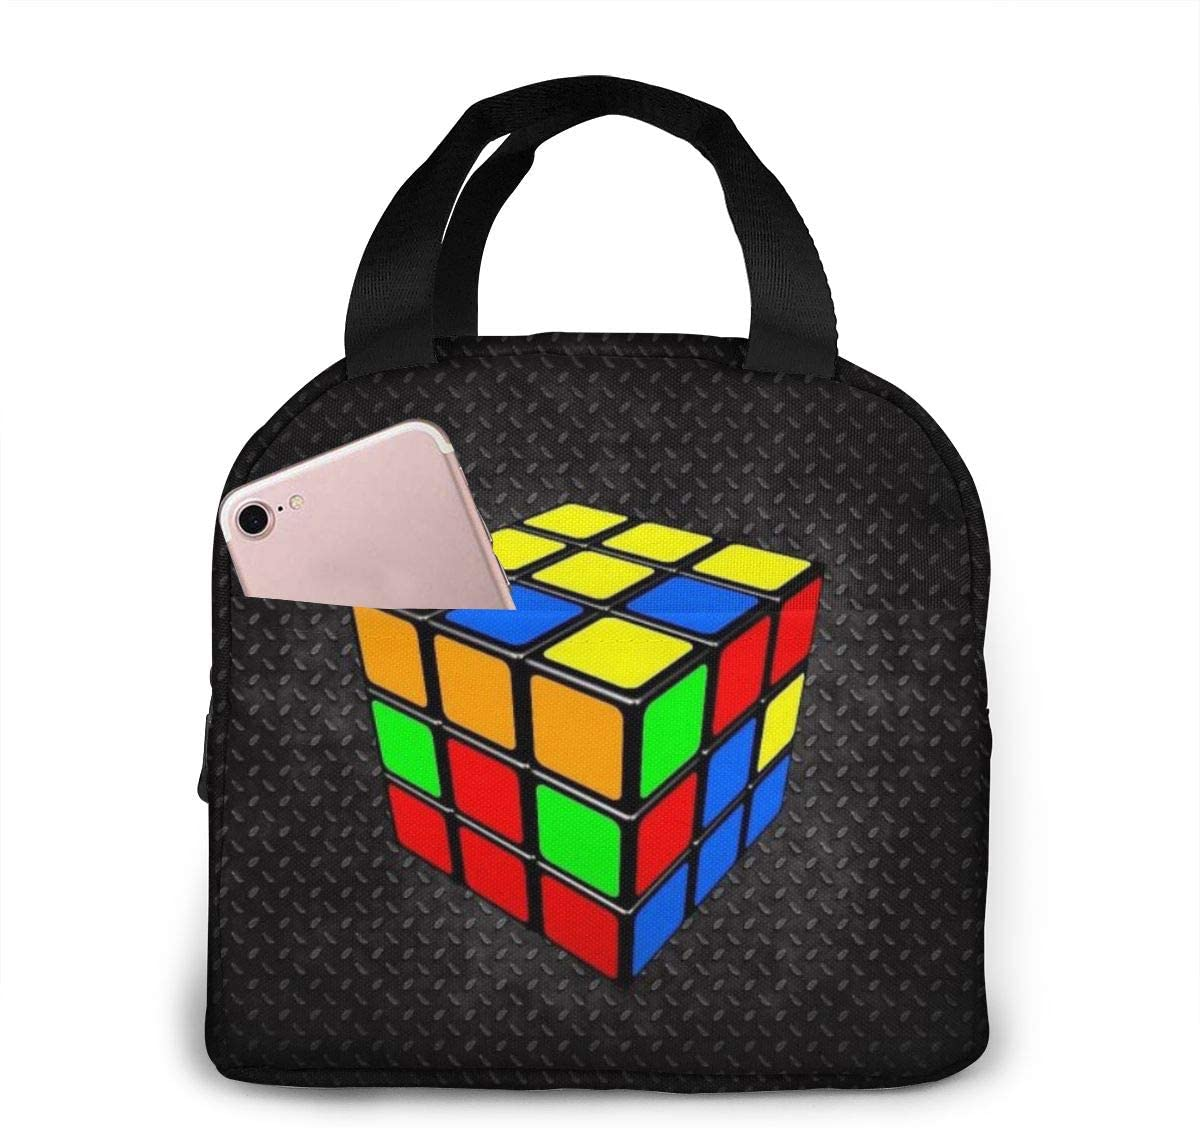 NiYoung Kids Boys Girls Toddlers Colorful Cube Rubik Black Lunchbox for Work School Picnic Beach, Compact Insulated Thermal Handbag Lunch Organizer, Heat-Resistant Lunch Tote Bag